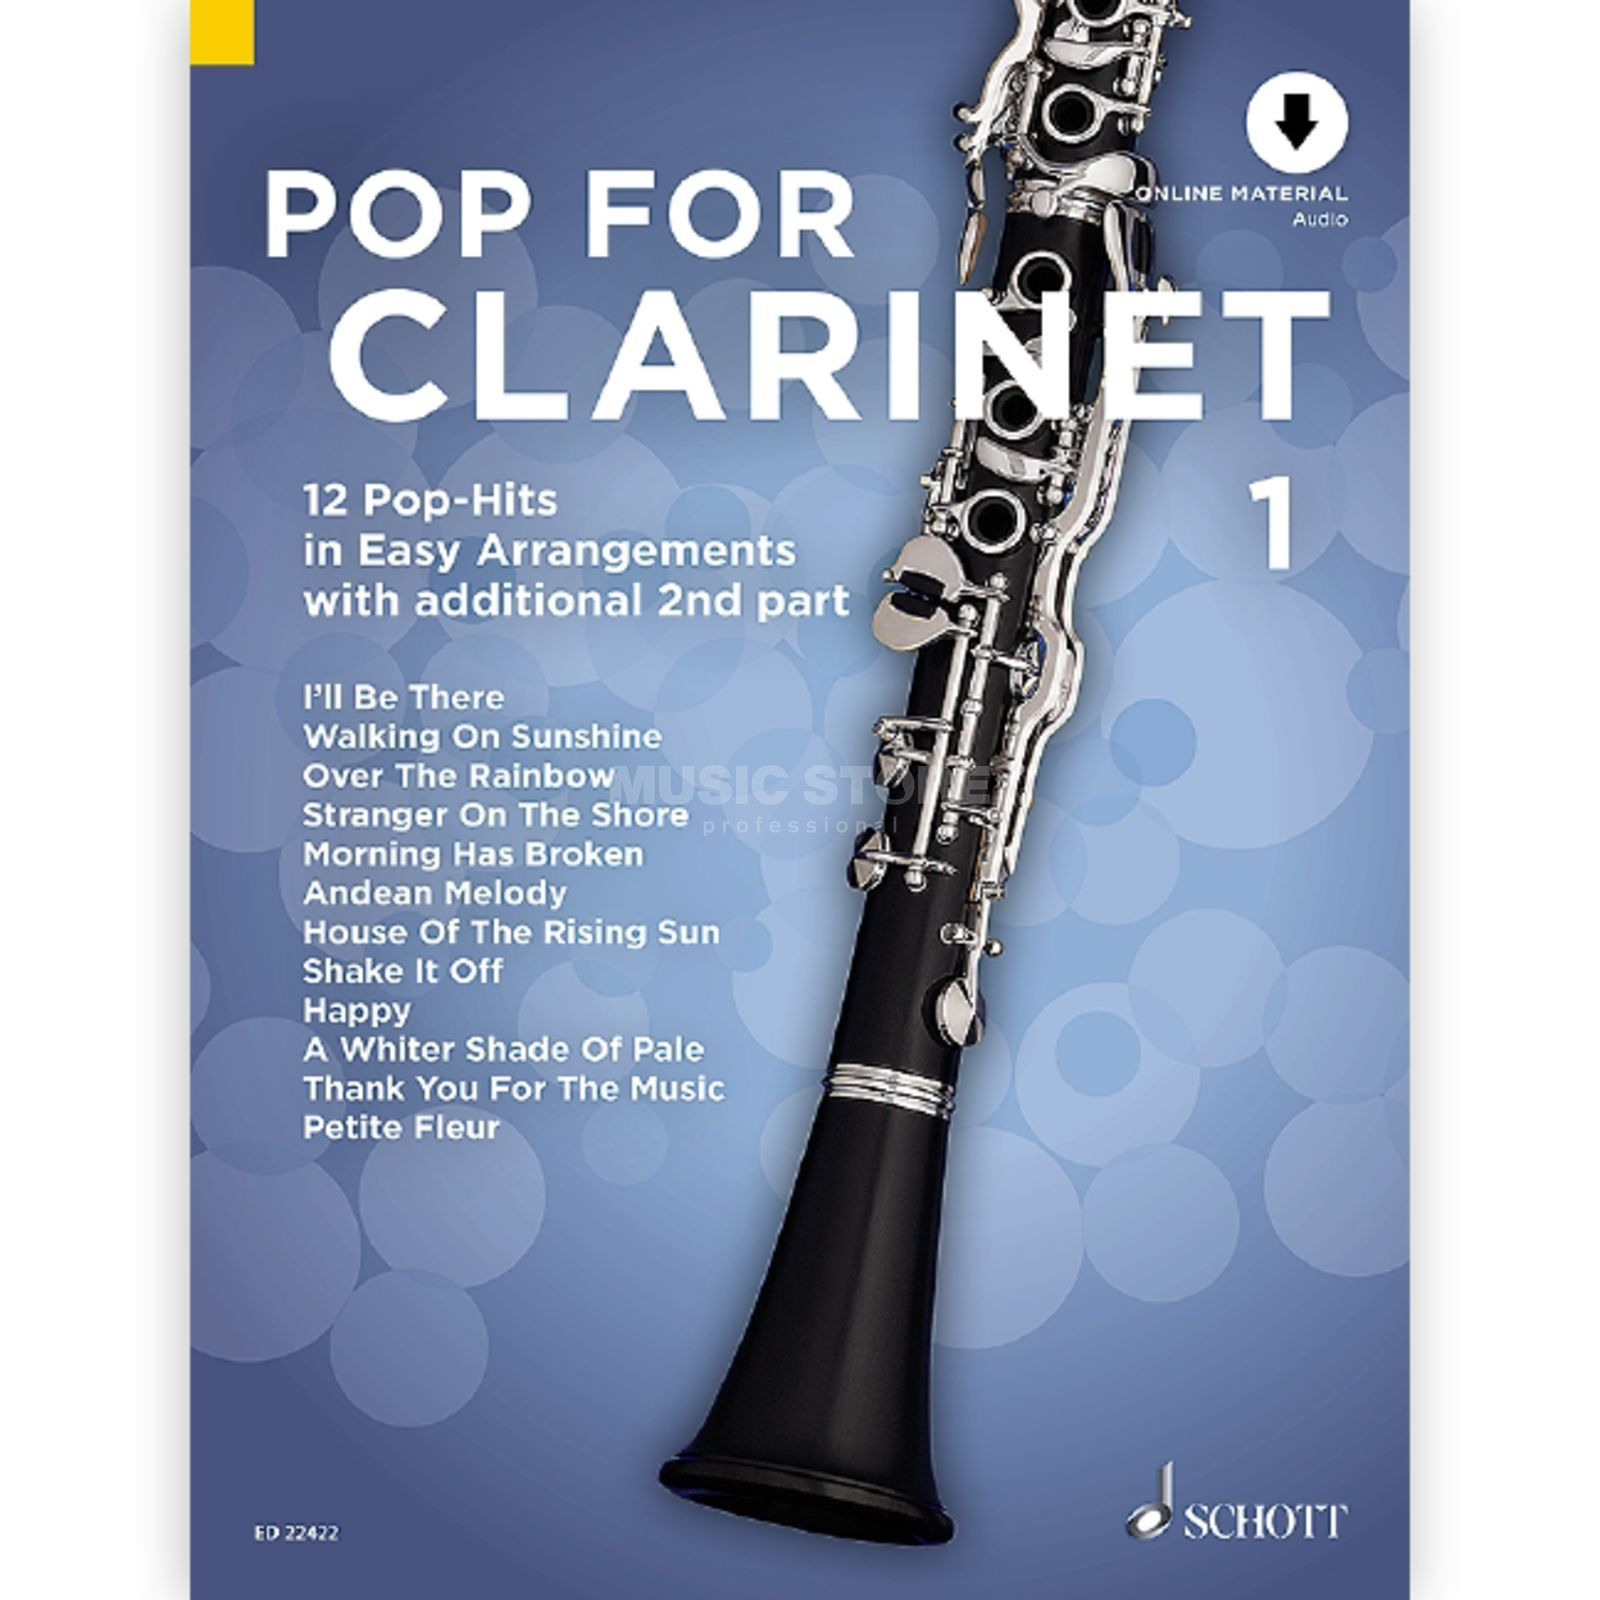 Schott-Verlag Pop For Clarinet 1 Image du produit